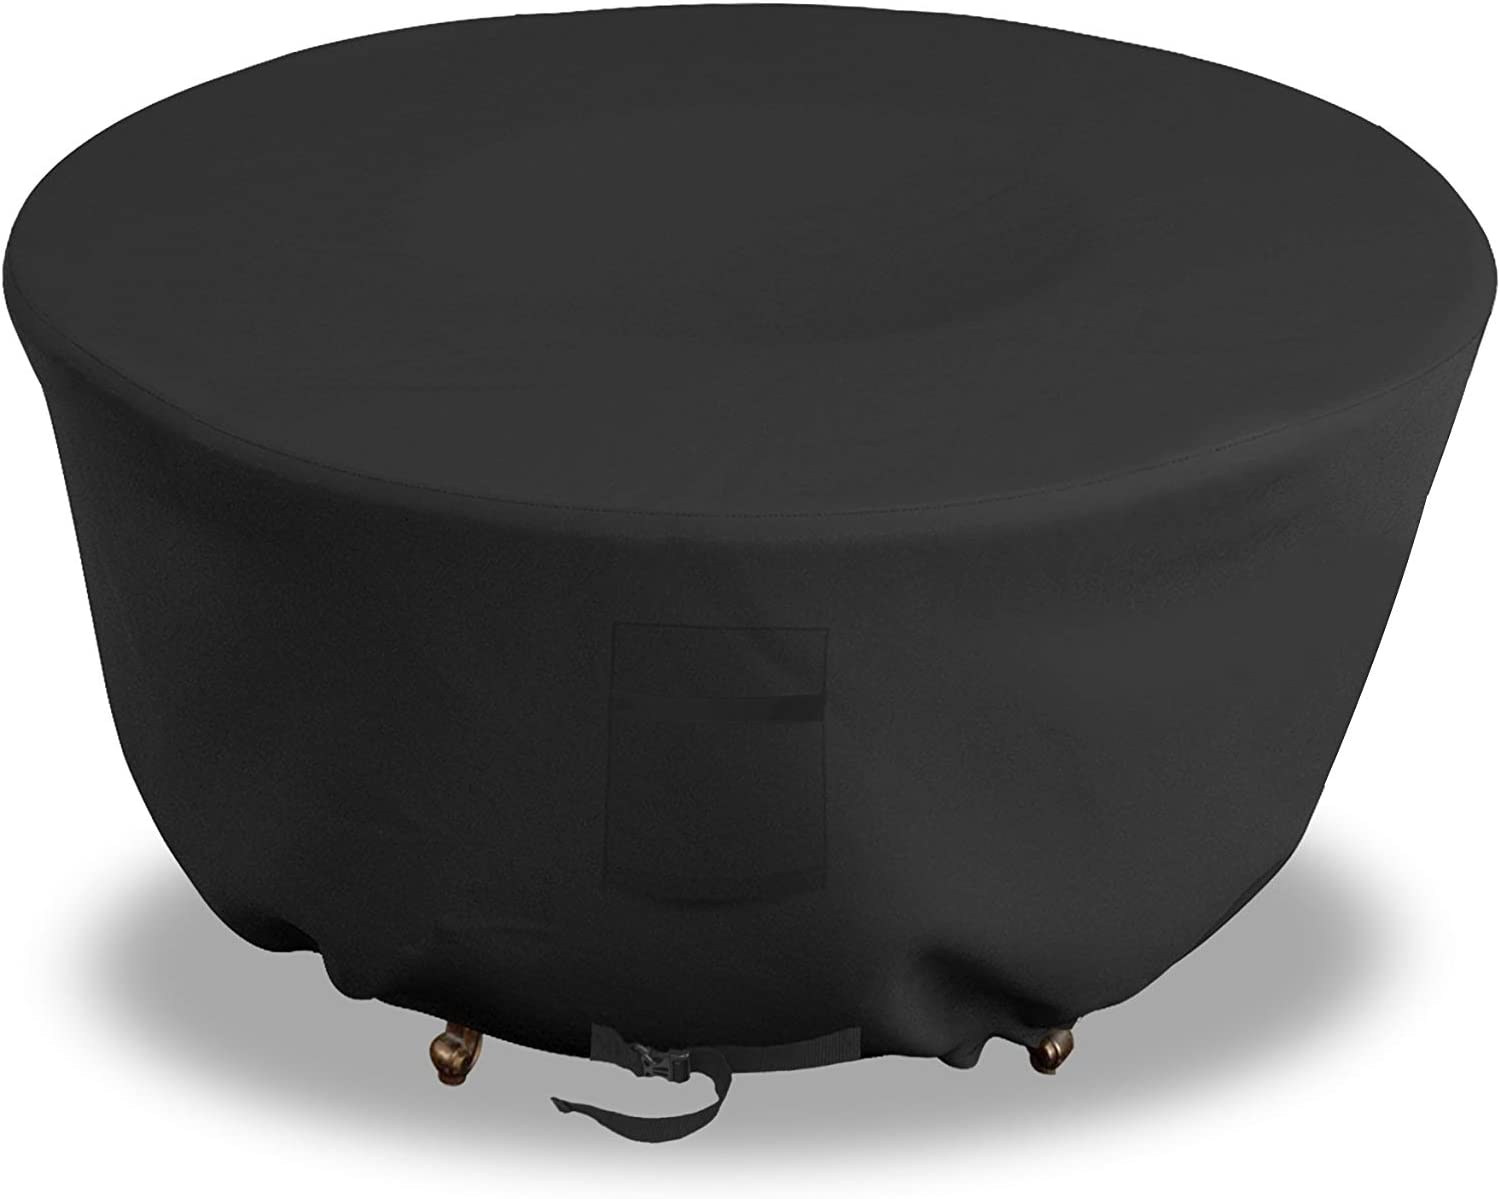 Firepit Covers Round 18 Oz Waterproof F 2021 model - Max 50% OFF Weather Resistant 100%